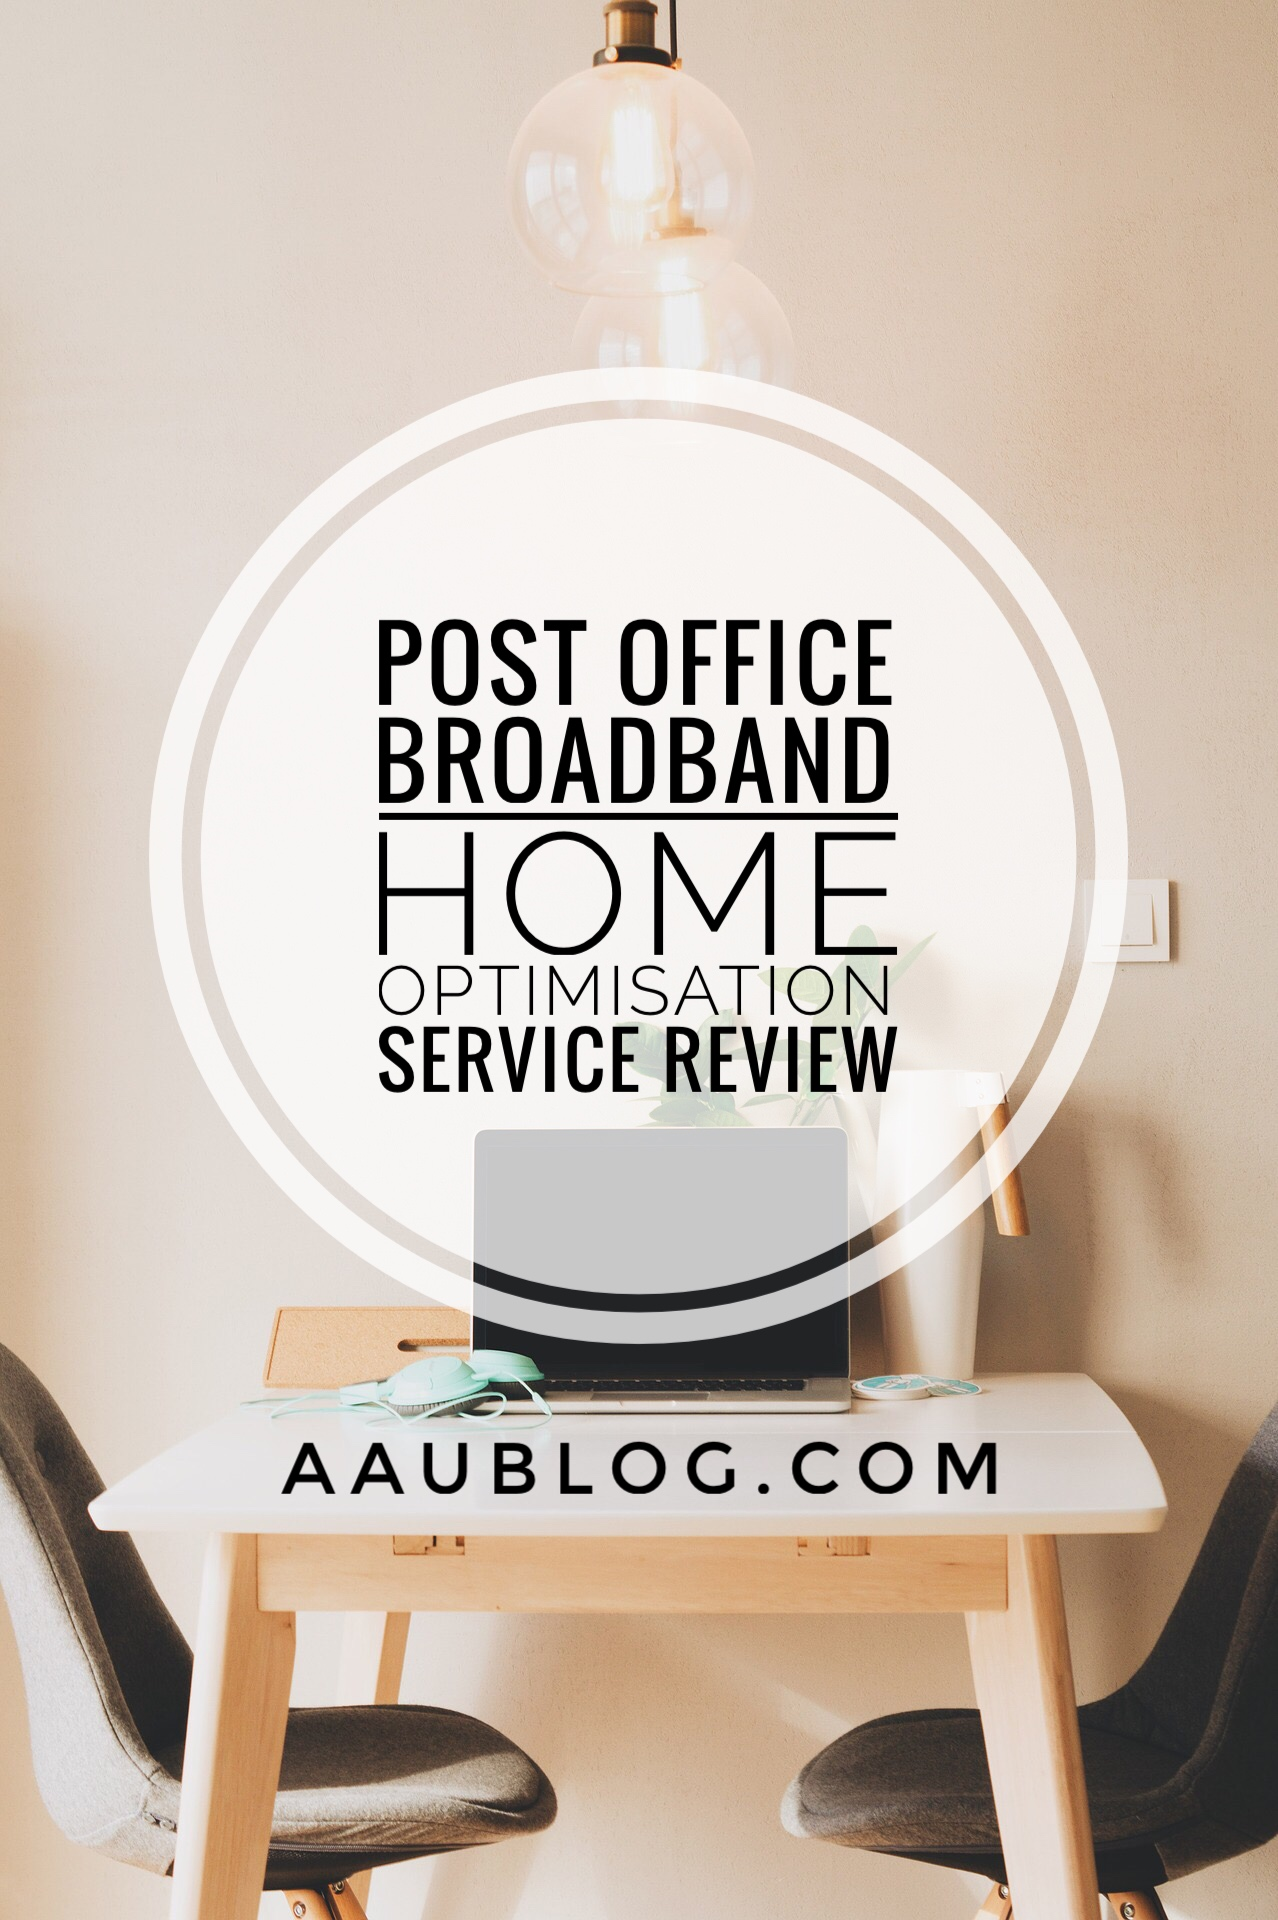 Post Office Broadband | Home Optimisation Service Review - AAUBlog